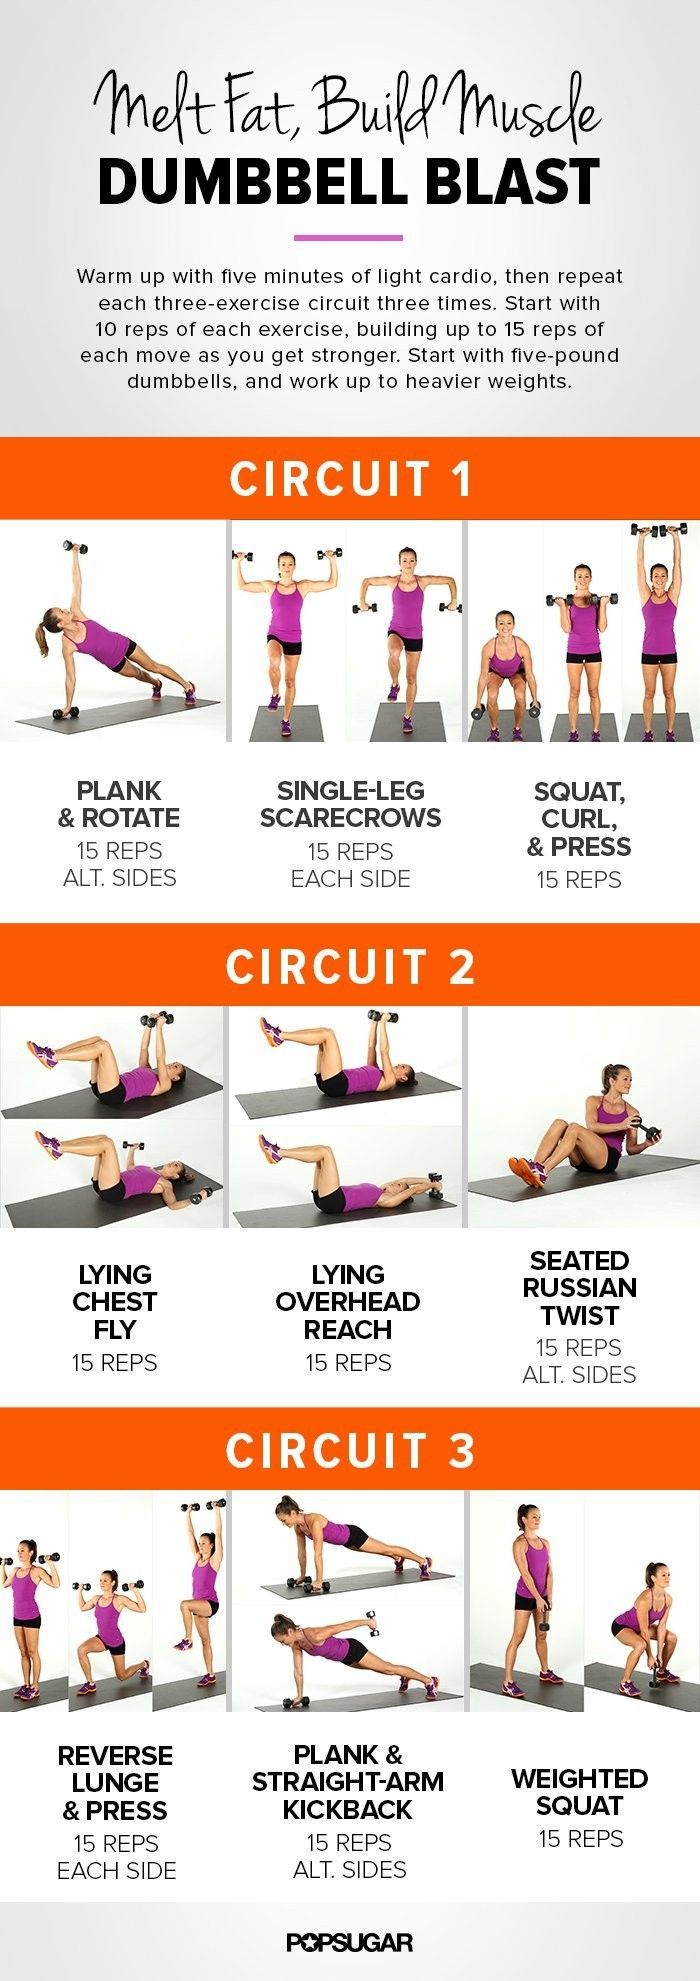 It's time to build some metabolism-boosting muscles! Just print this poster of our dumbbell blast circuit workout.